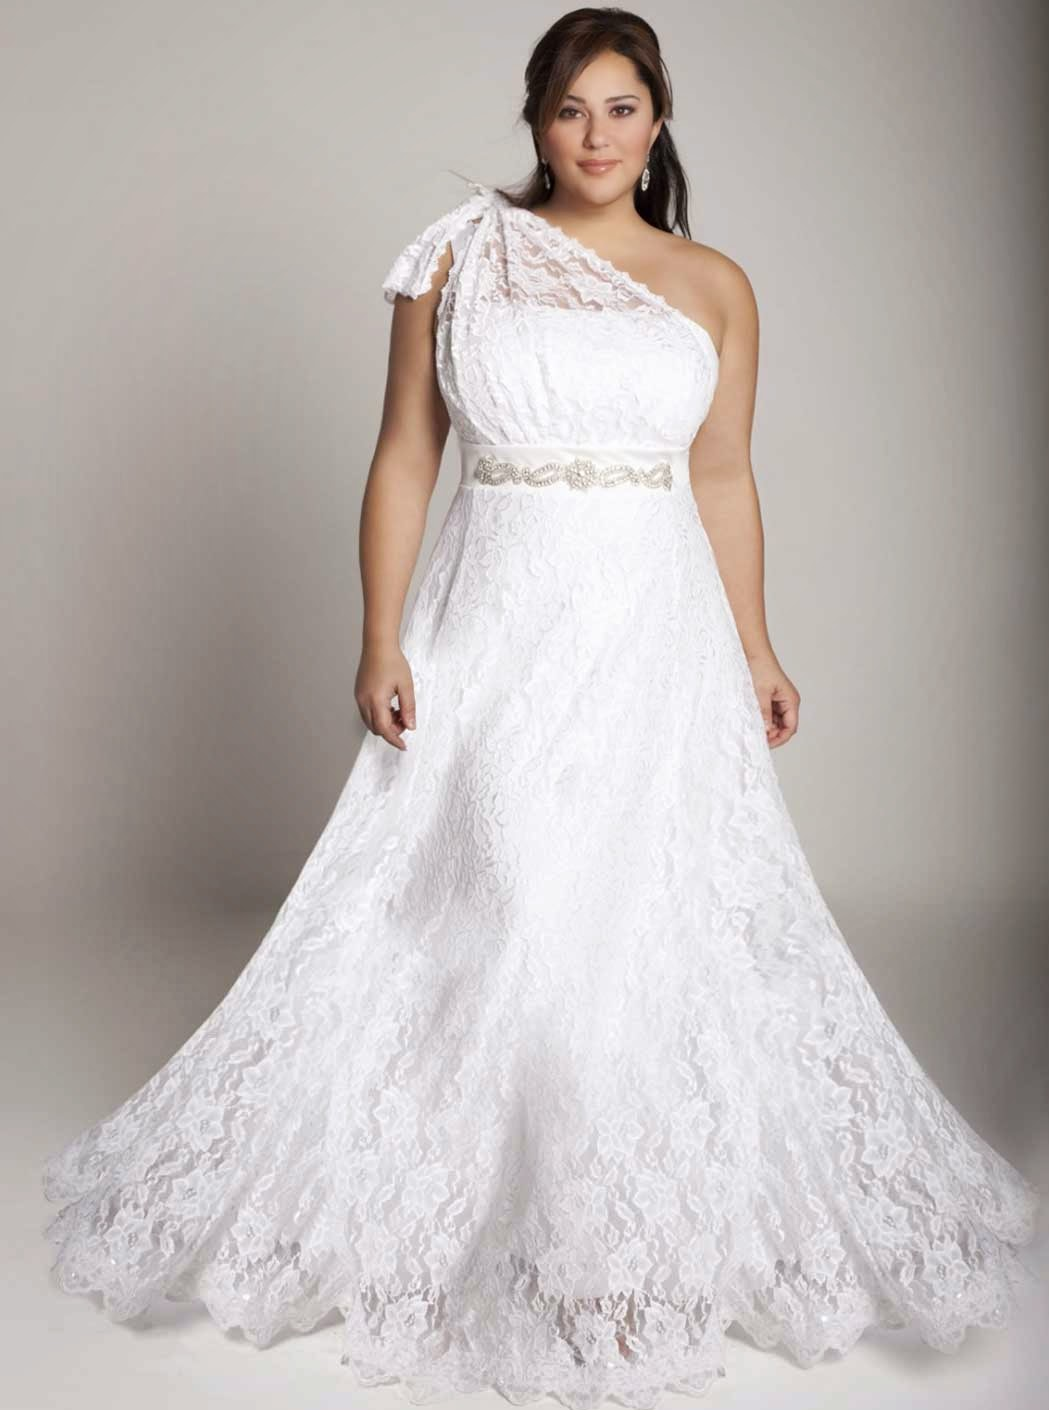 Casual Lace Wedding Dresses Design - Photos HD Concepts Ideas